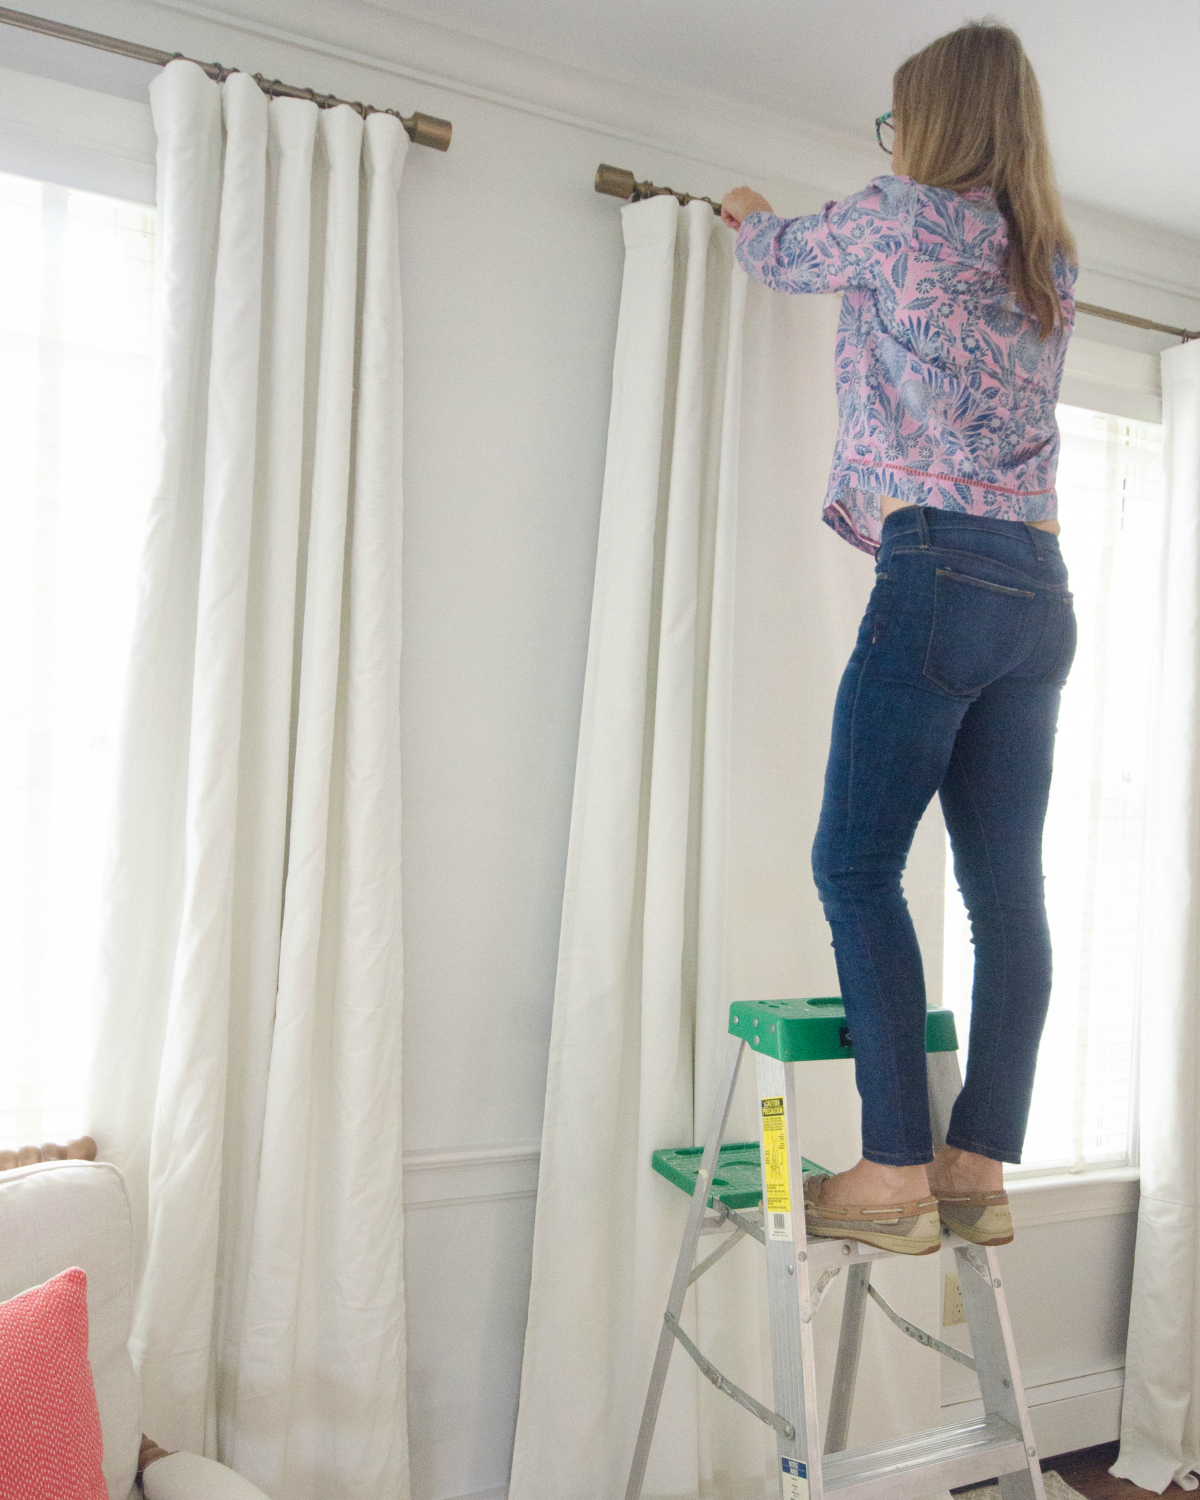 The final step in how to get your curtains to hang straight is to take some twine and loosely tie it around the bottom folds to hold them in place.